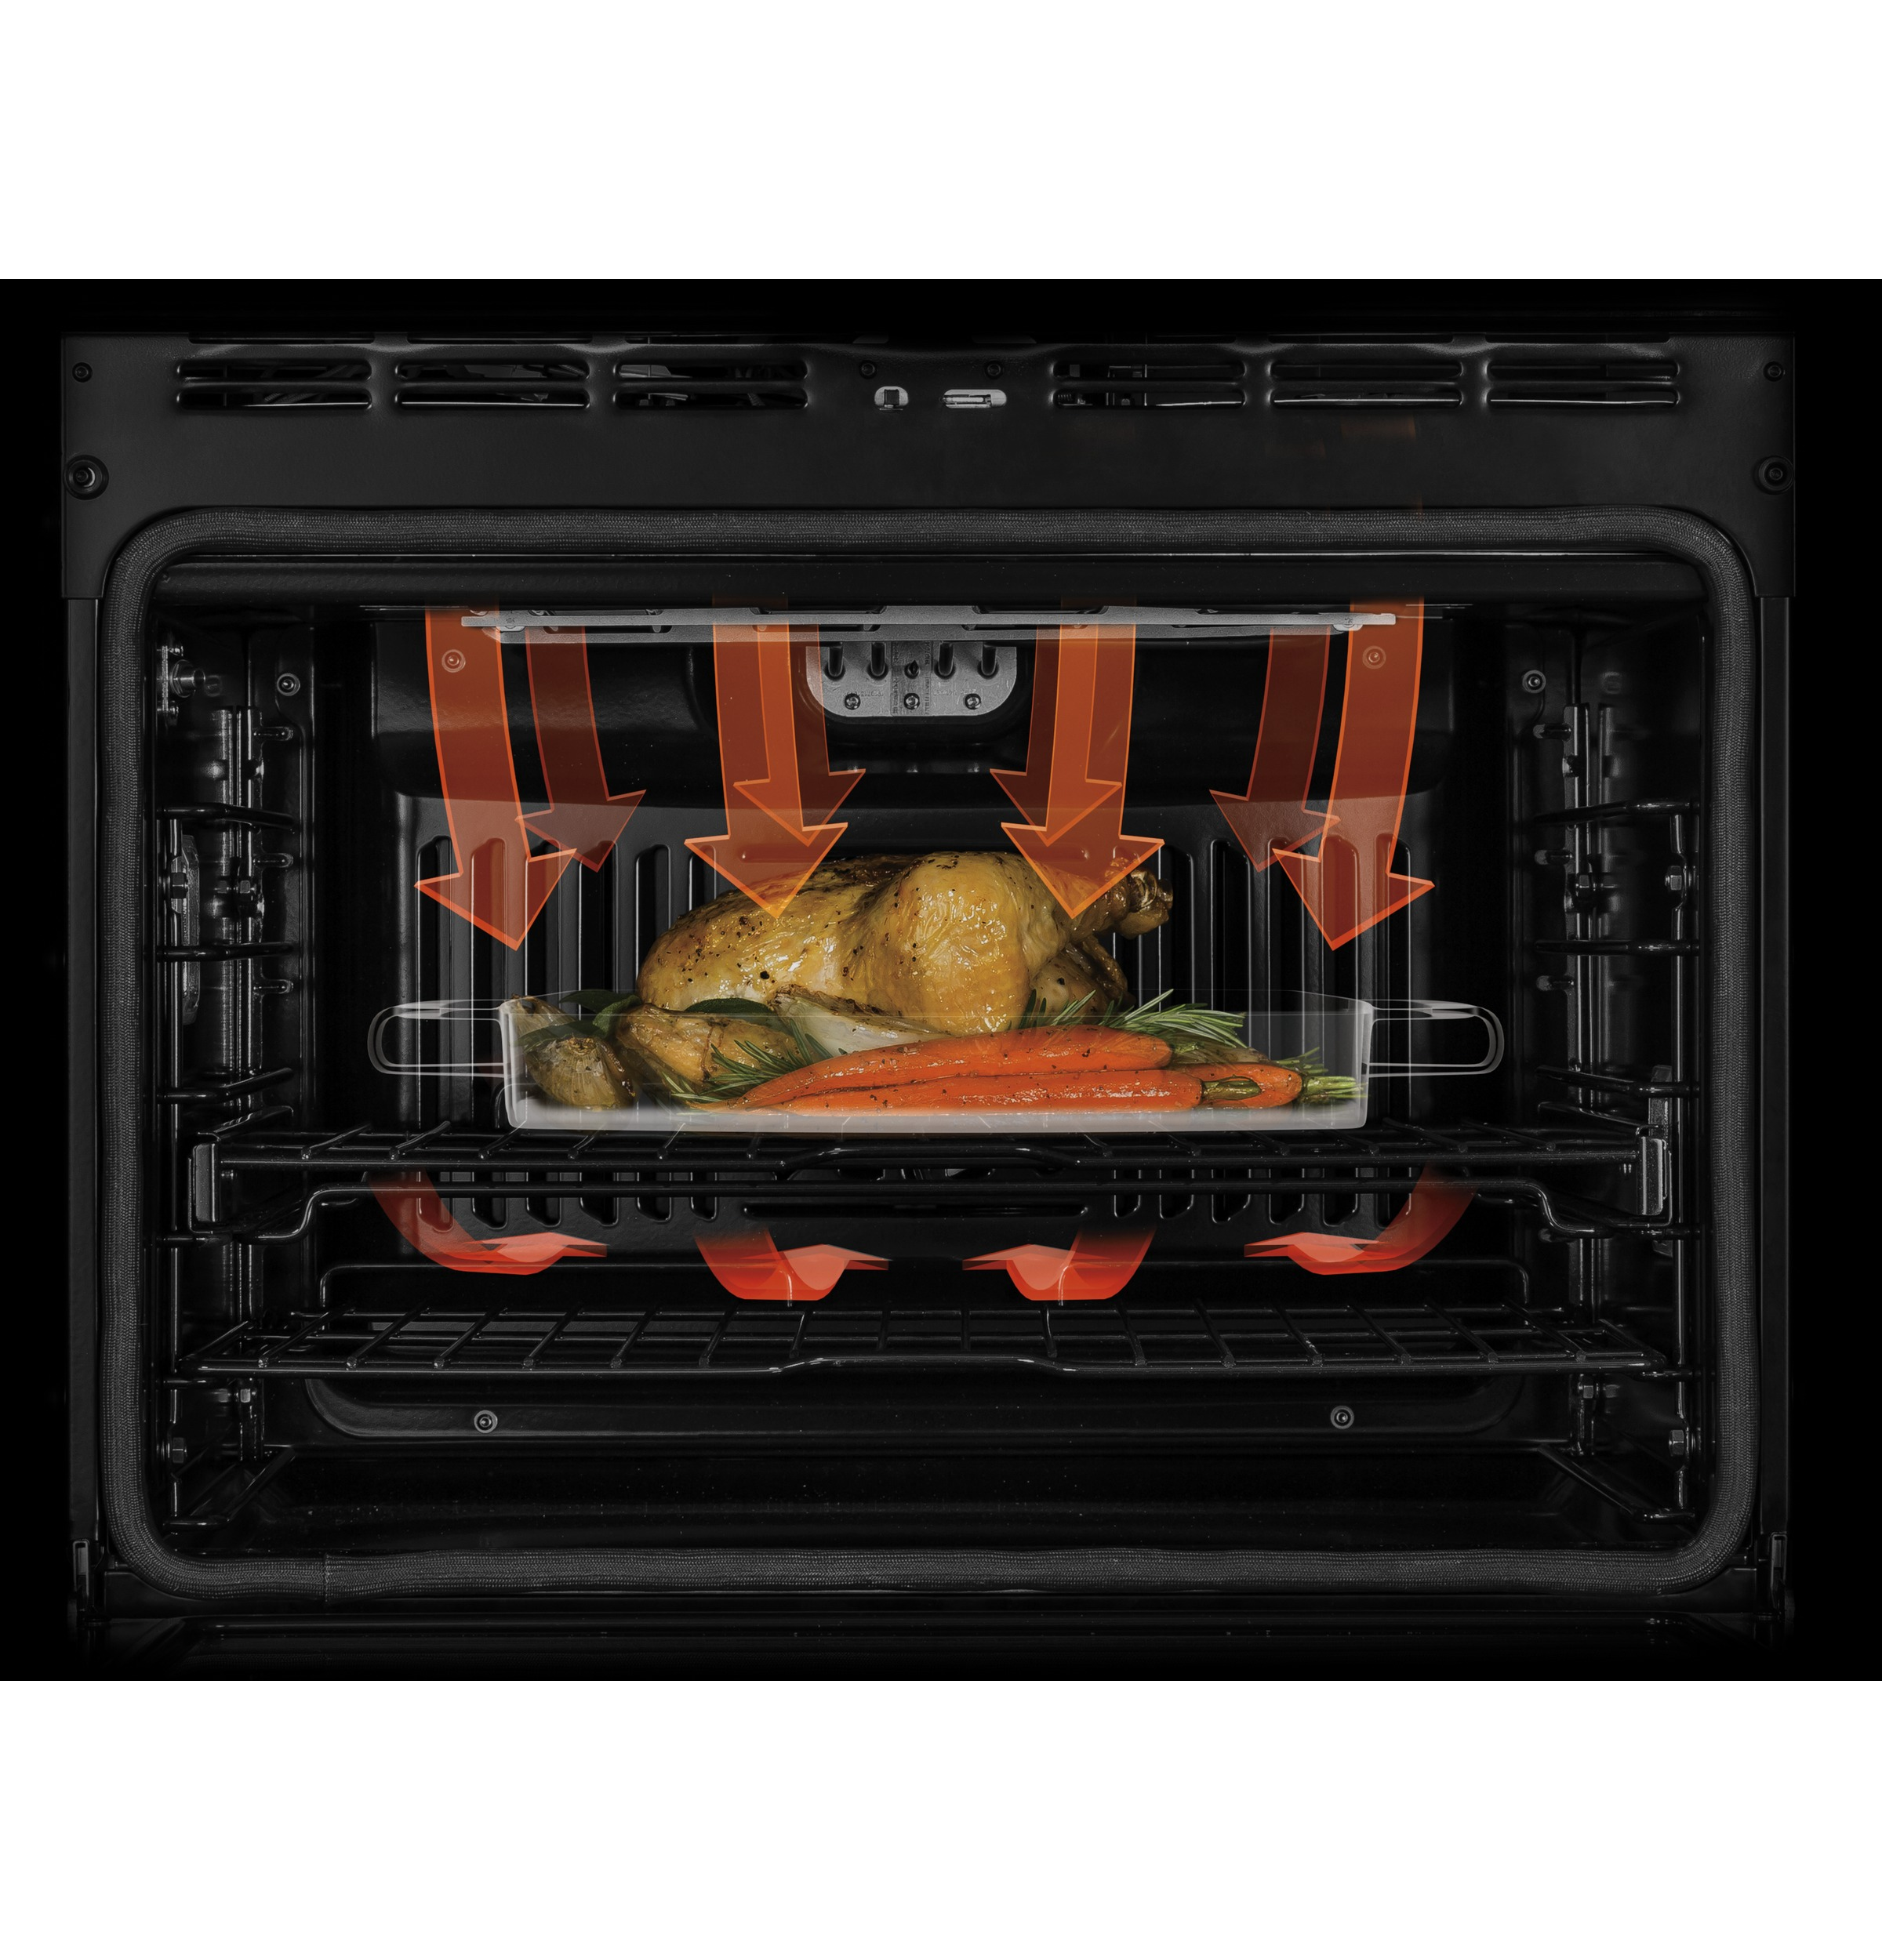 "Model: CT9070SHSS | GE Cafe GE Café™ Series 30"" Built-In French-Door Single Convection Wall Oven"